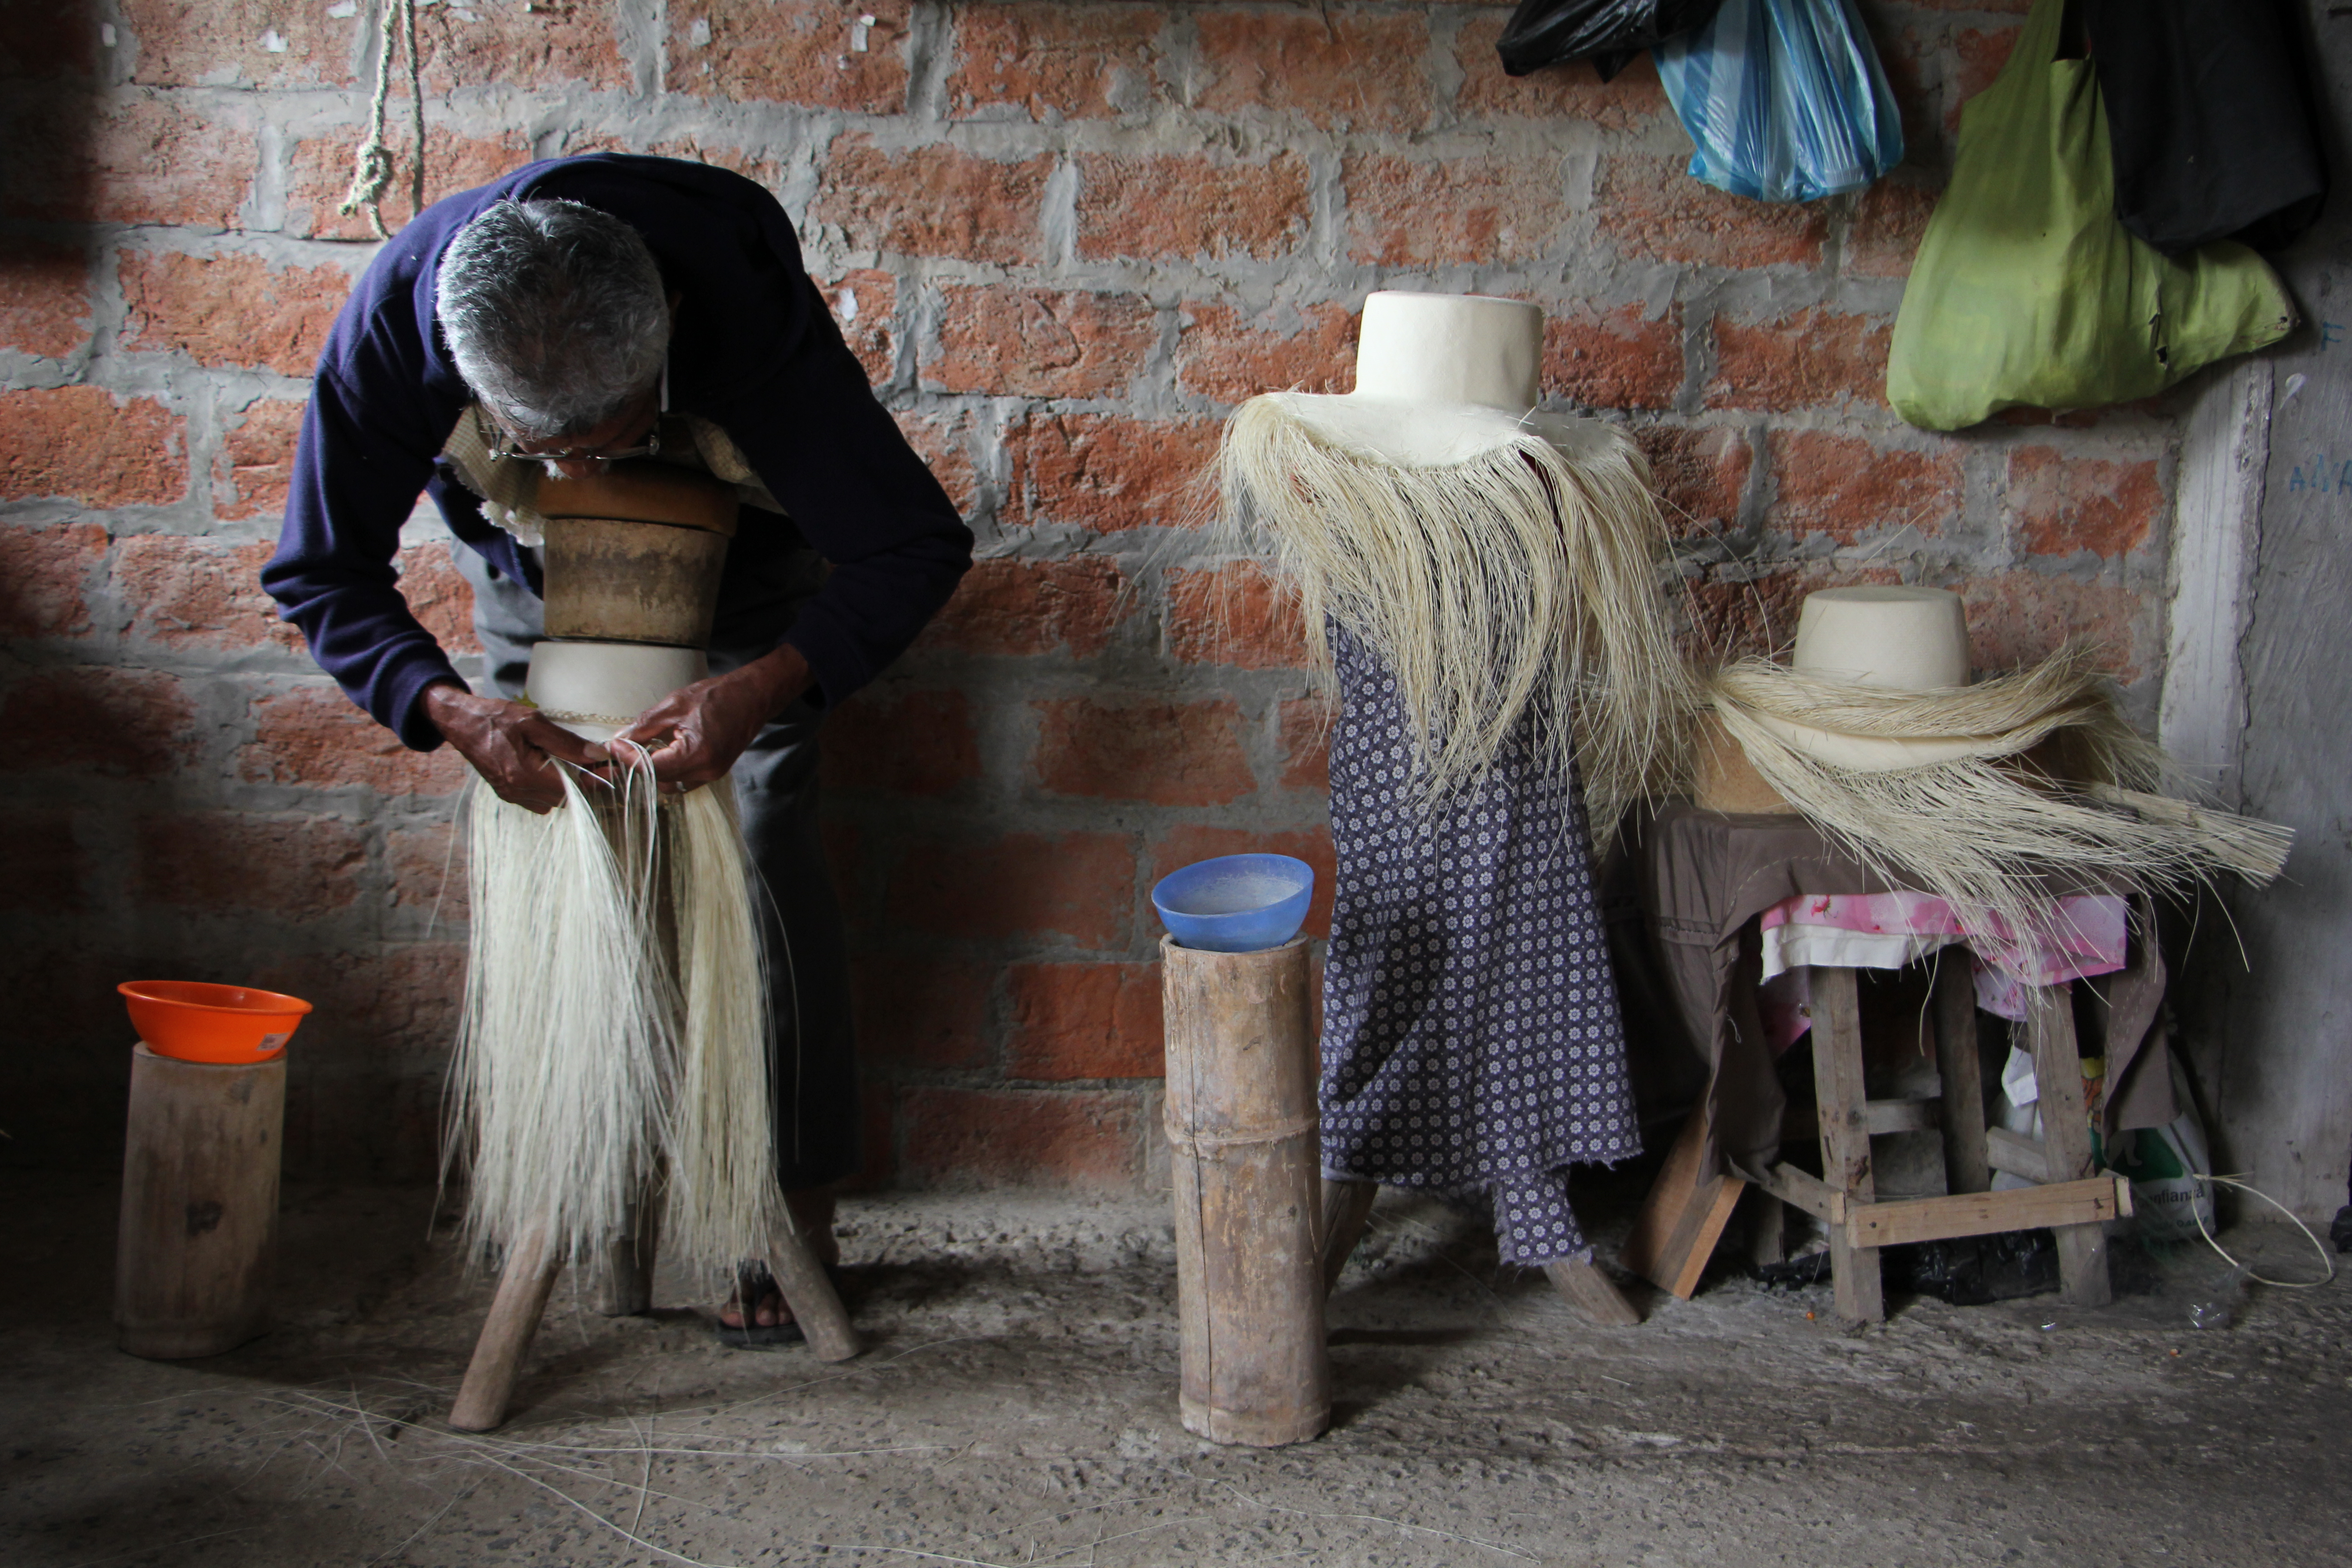 The toquilla straw hat is woven from fibres from a palm tree characteristic of the Ecuadorian coast. Cenovio is a master weaver, with over 70 years, every day of his life he acquires this pose. A grade 30 hat can be done by him in one month and a half, something that could take other weavers more than 2 months. Photo taken on August 5, 2016.